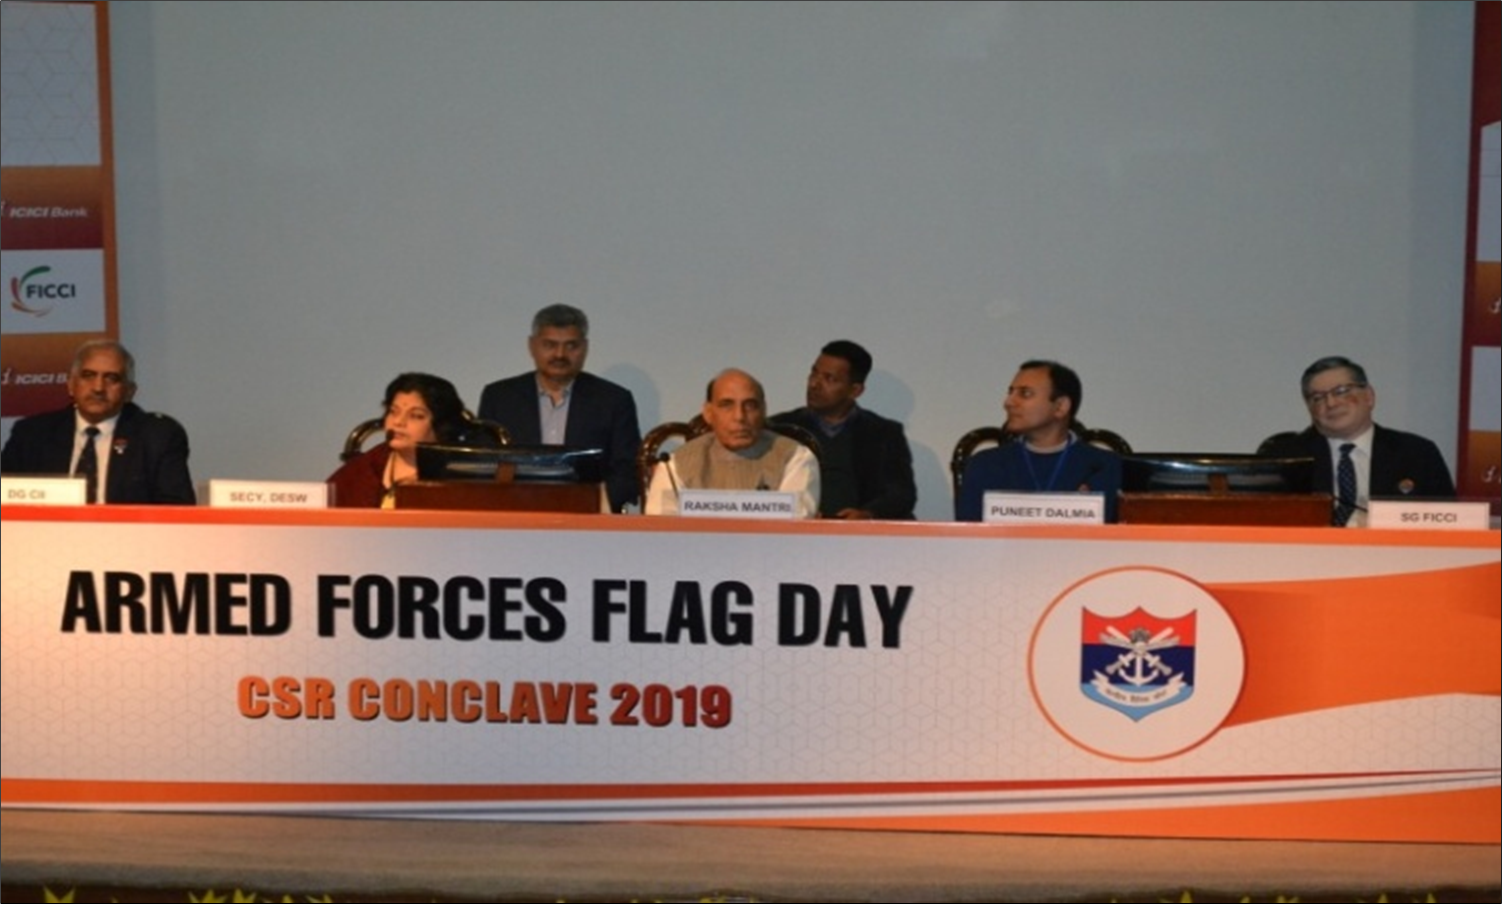 Hon'ble RM presiding over Armed Forces Flag Day -CSR Conclave at  Manekshaw Centre, Delhi Cantt  on  2.12.2019